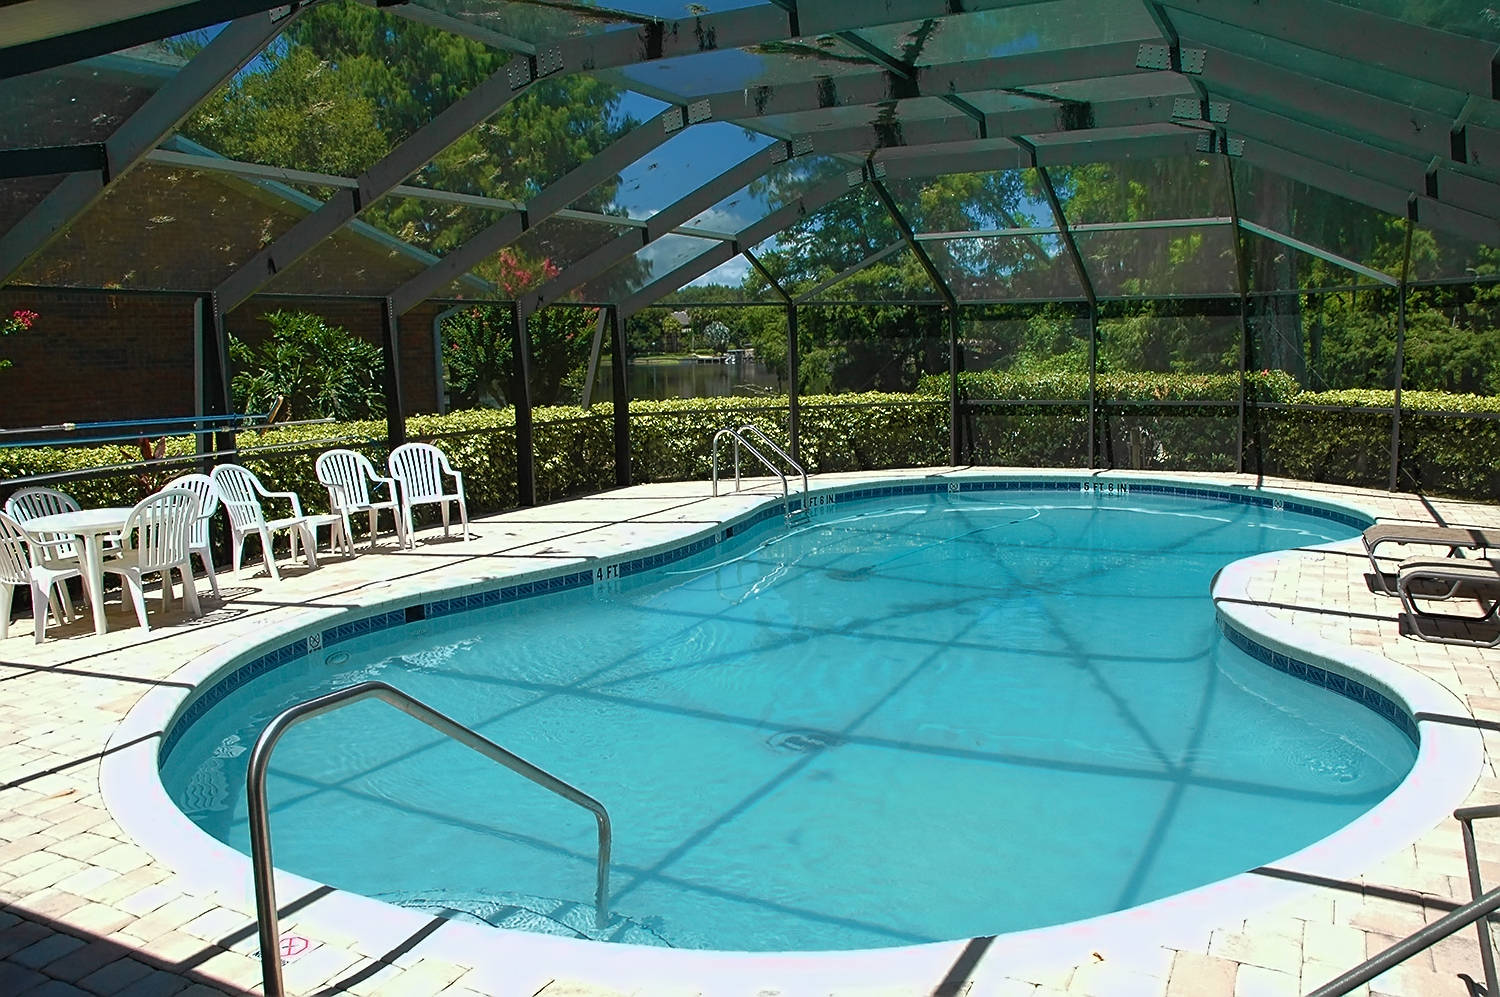 Homes for sale in regal bay kissimmee florida for Houses for sale pool